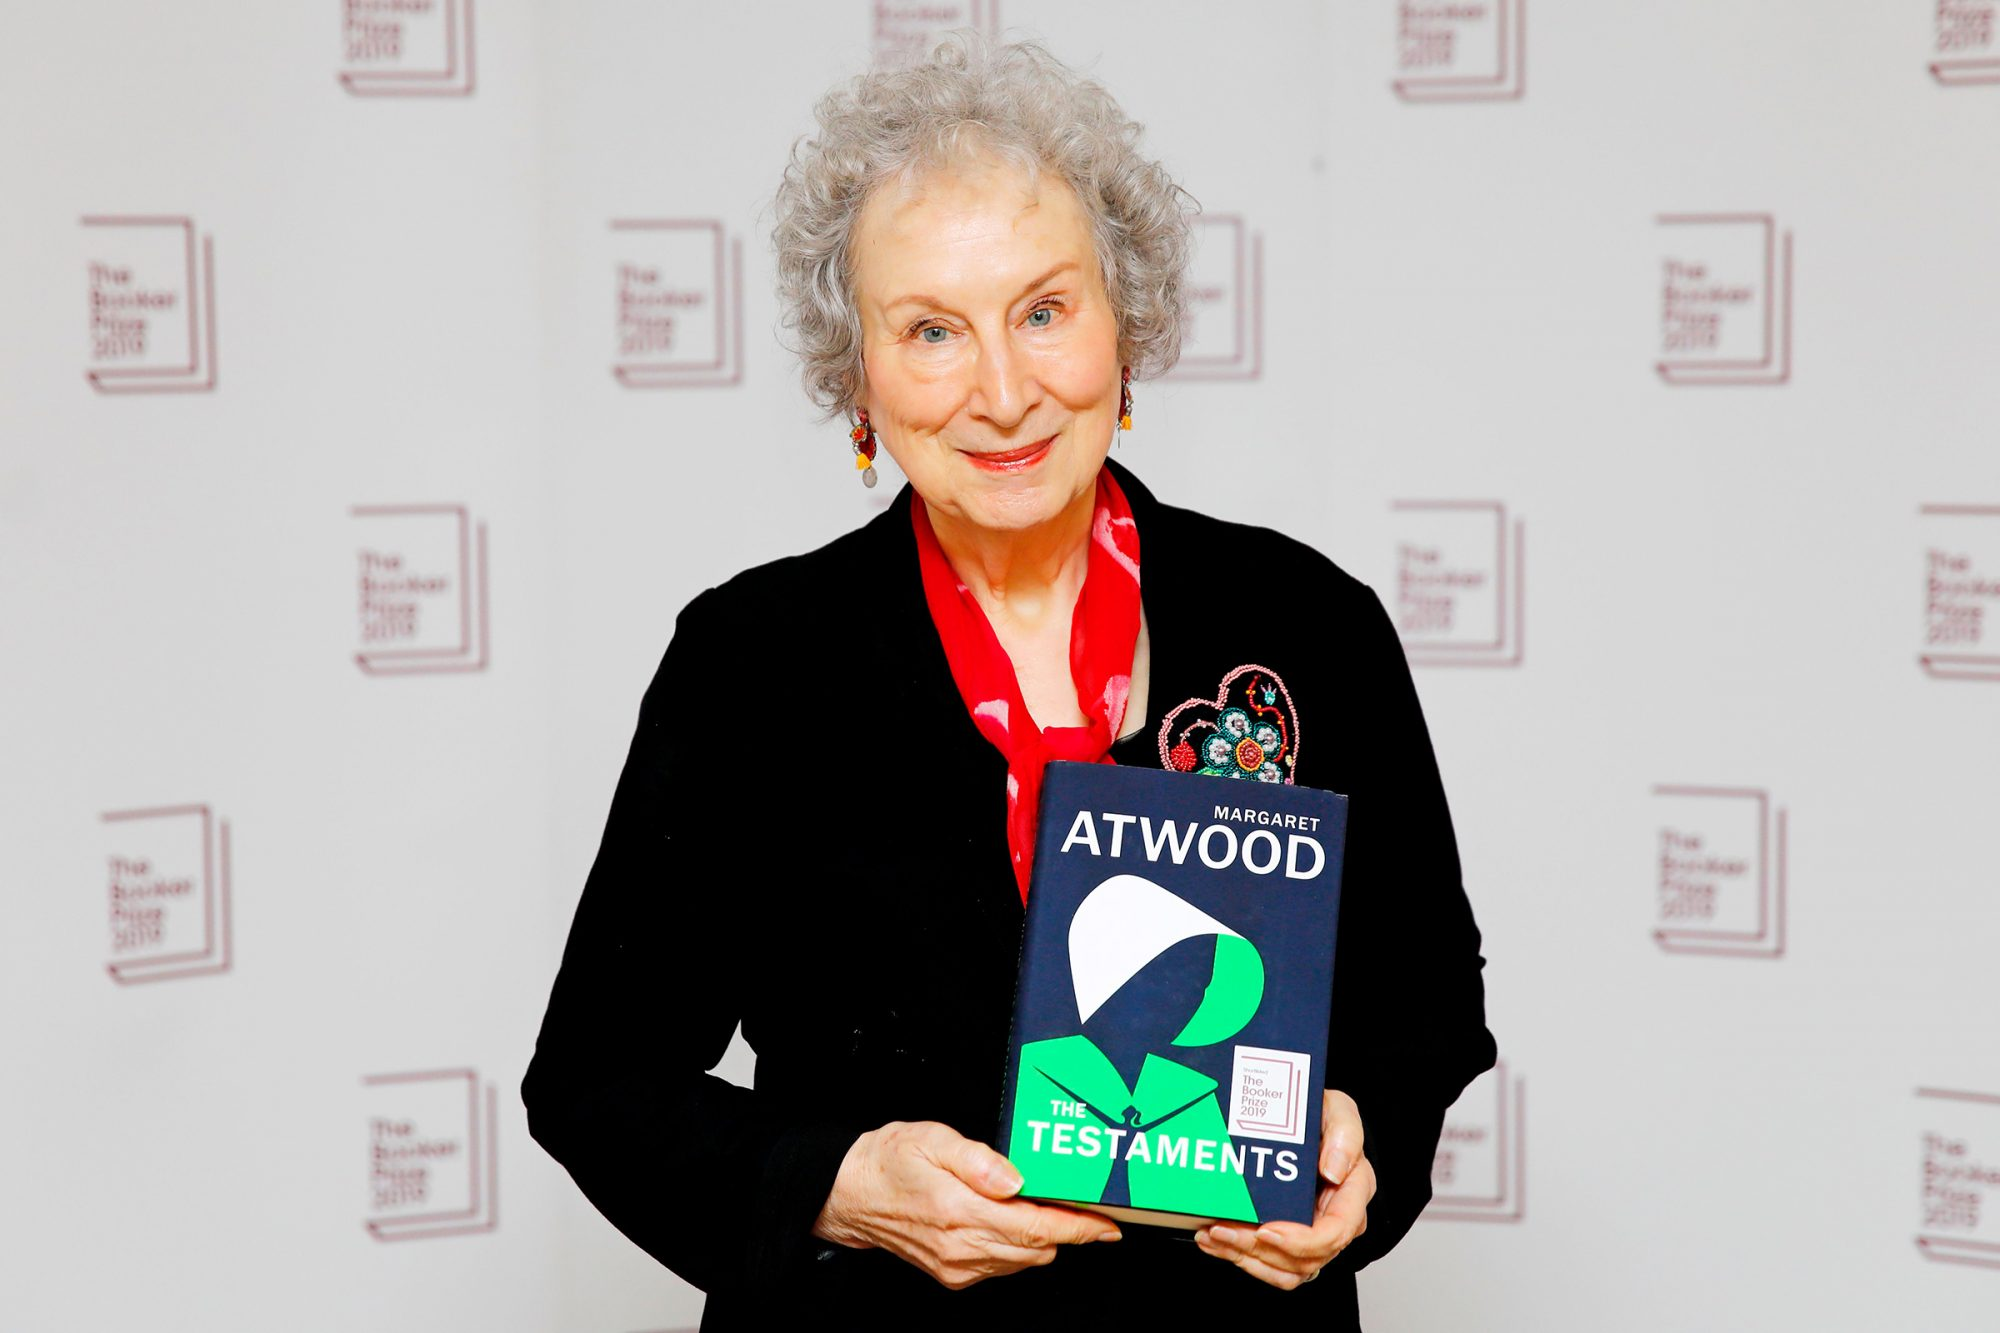 Margaret Atwood poses with her book 'The Testaments' during the photo call for the authors shortlisted for the 2019 Booker Prize for Fiction at Southbank Centre in London on October 13, 2019